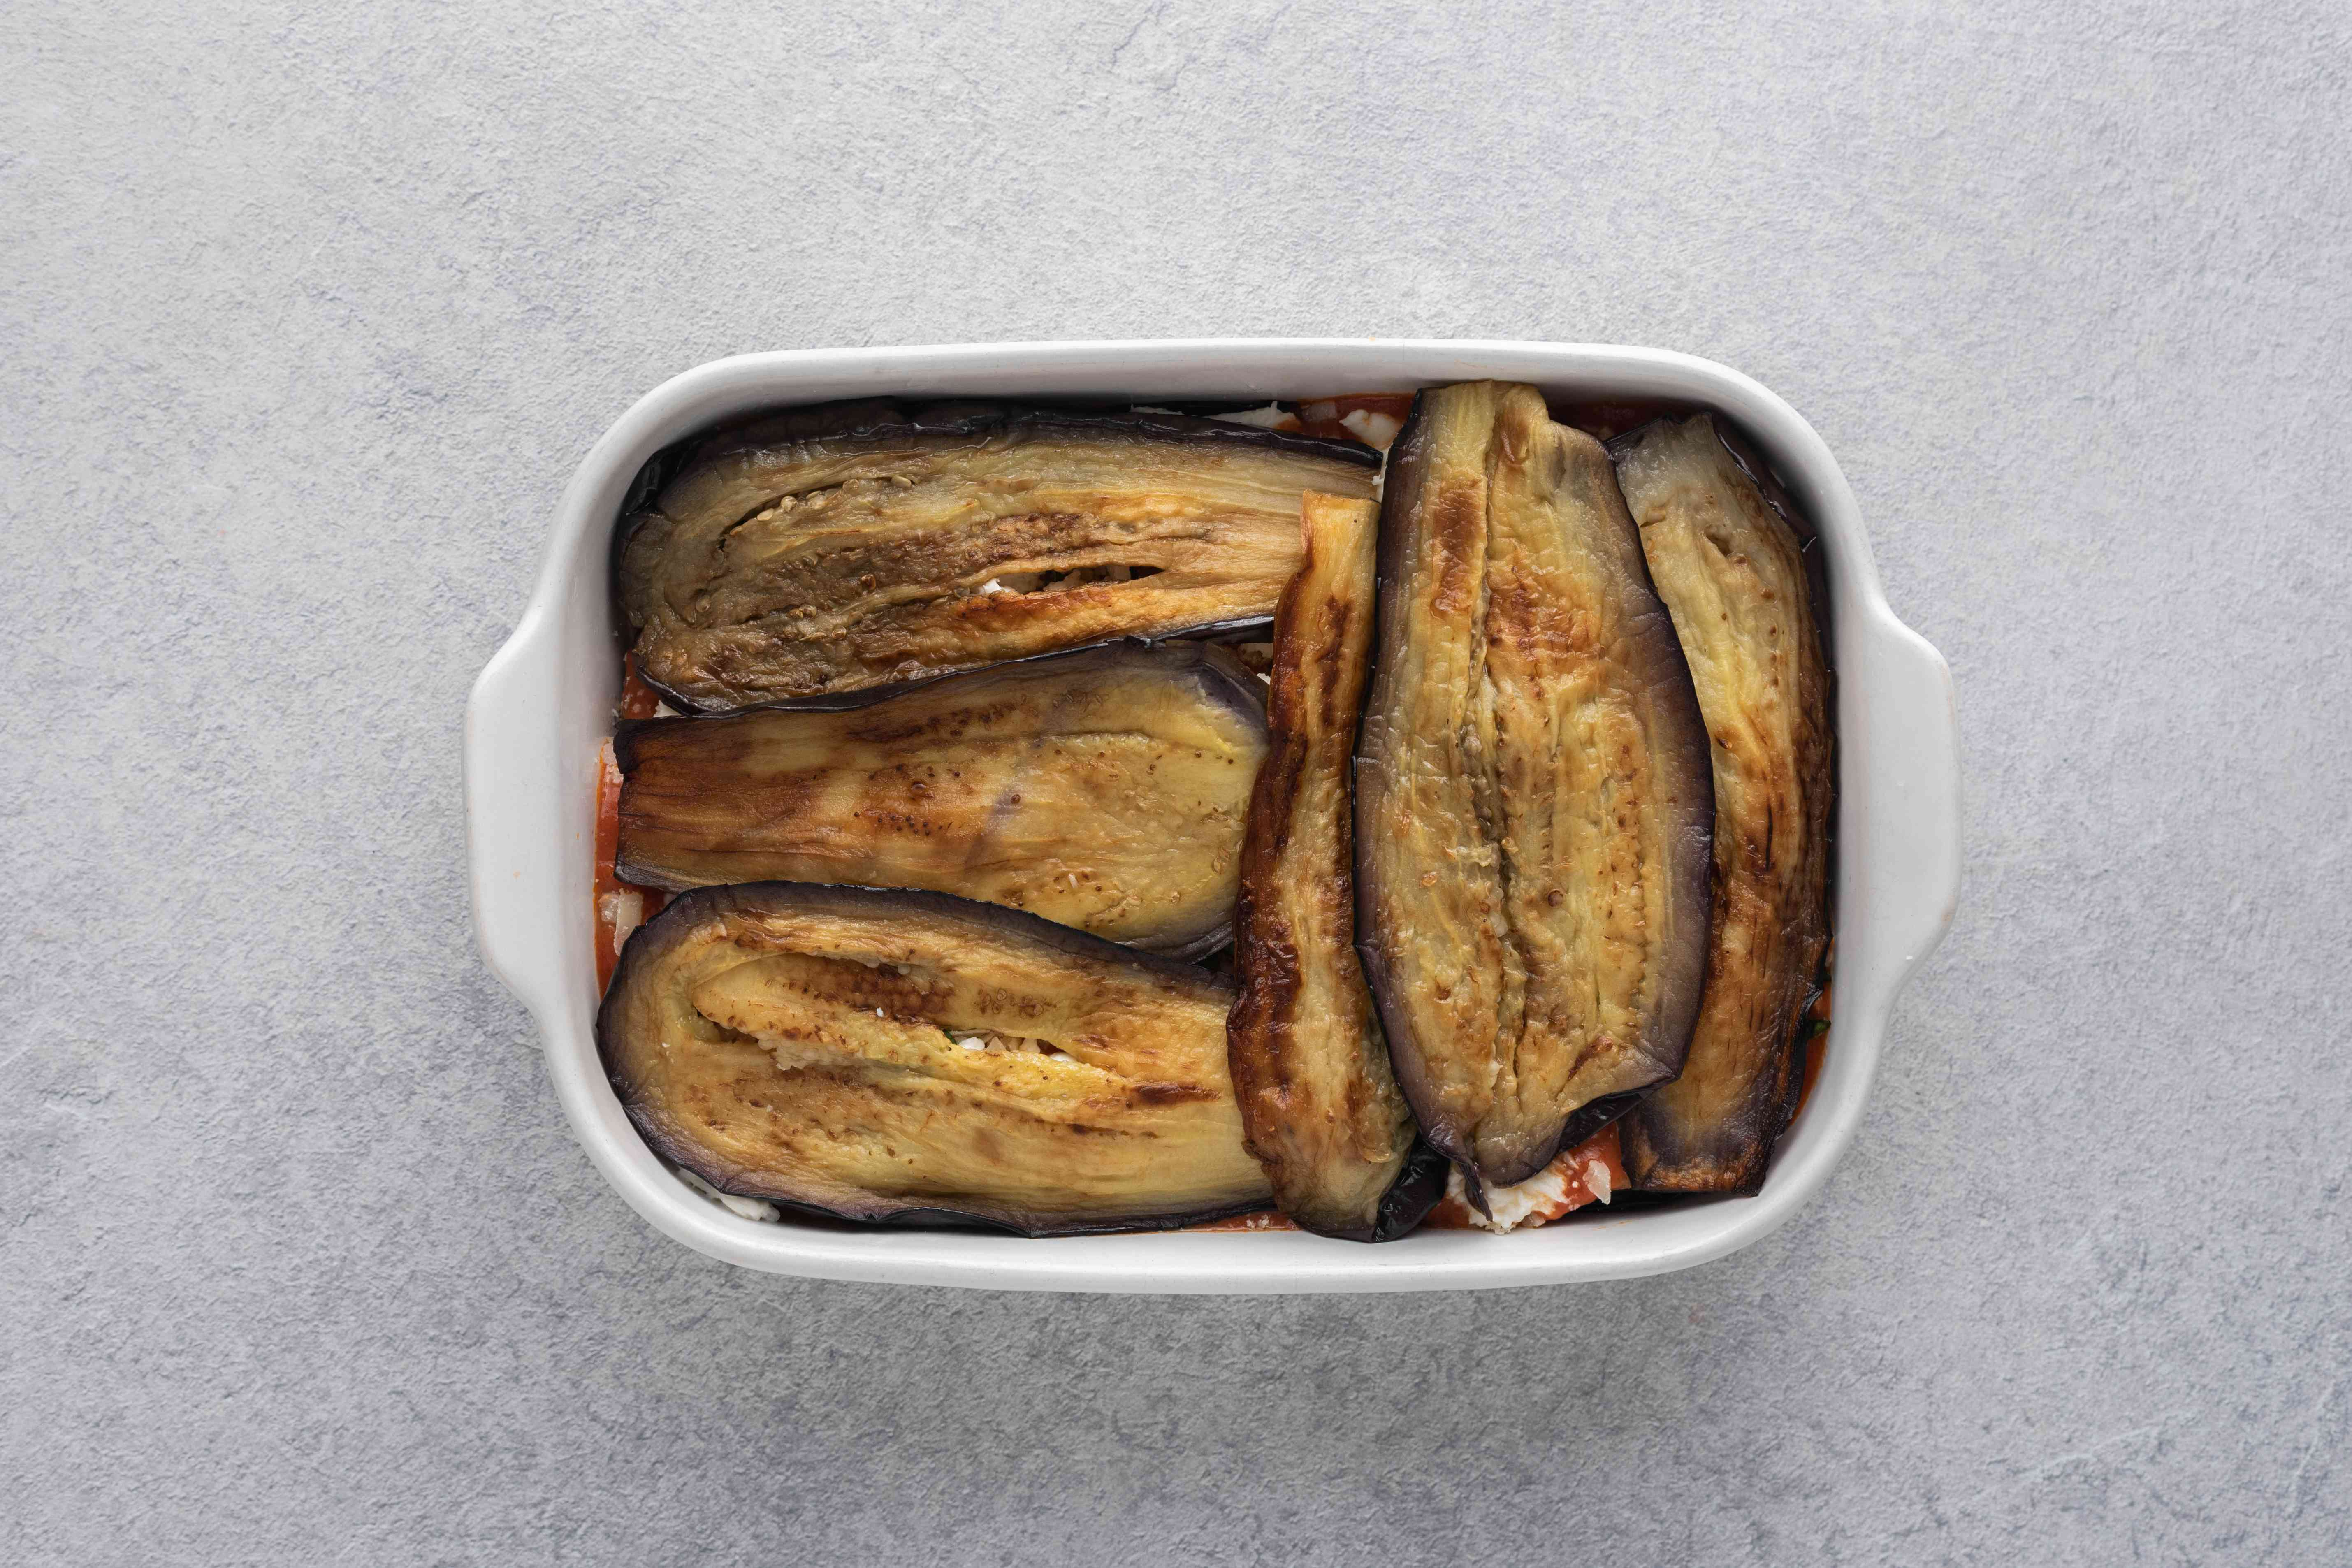 layer of fried eggplant in a baking dish